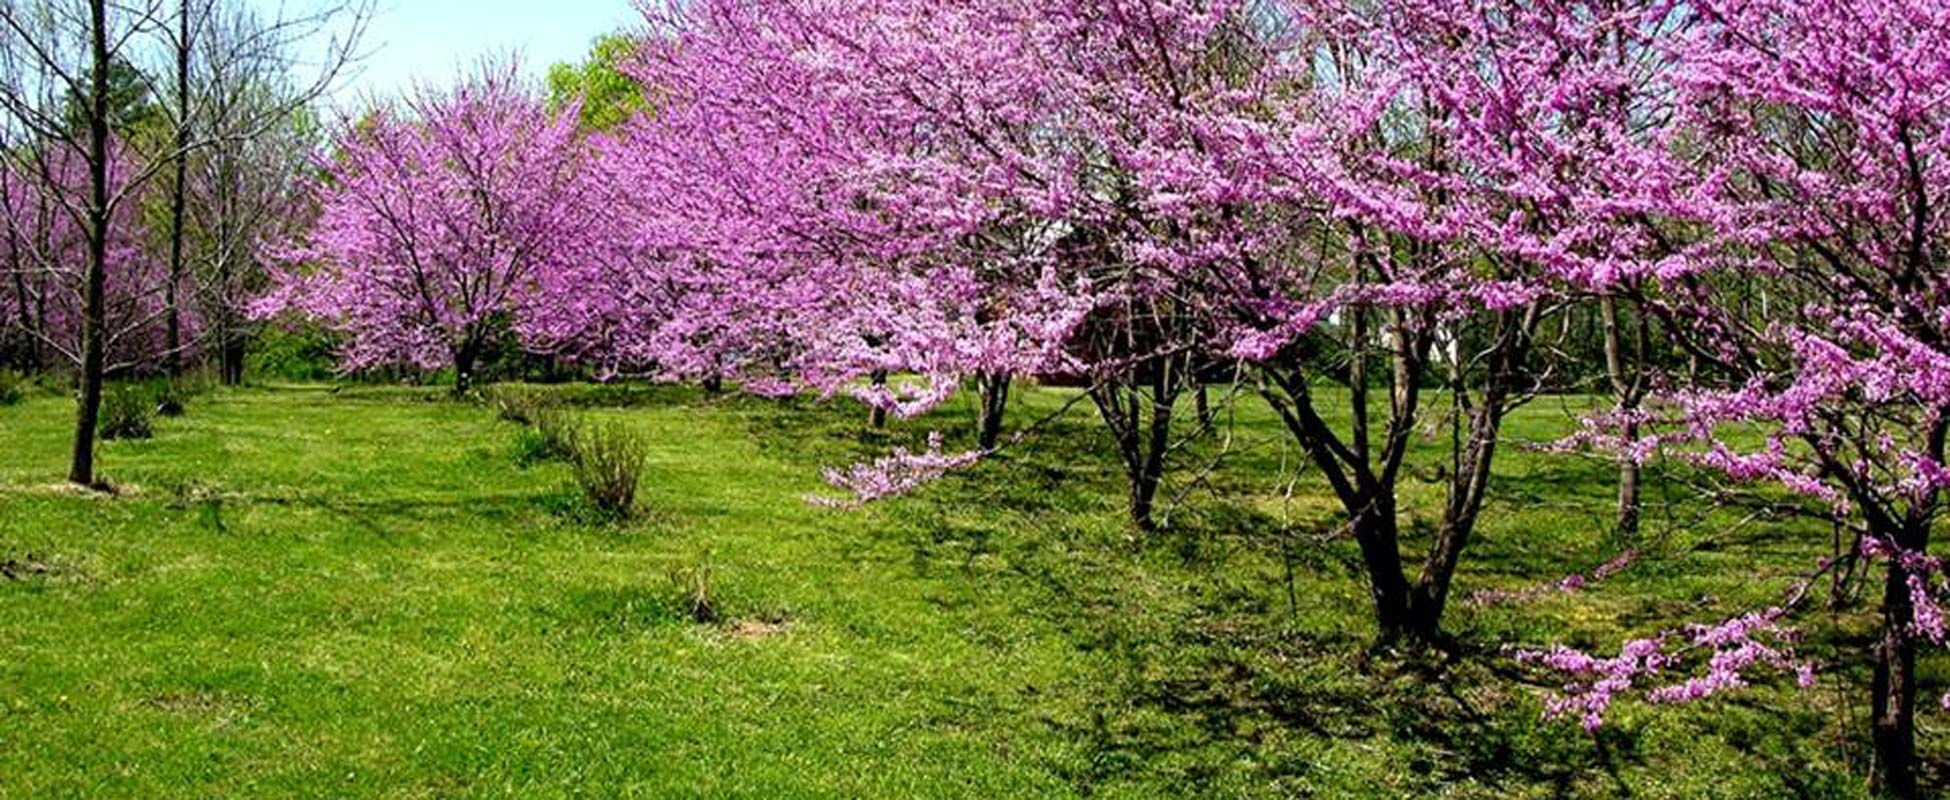 Photo of tree in bloom, covered with pink flowers